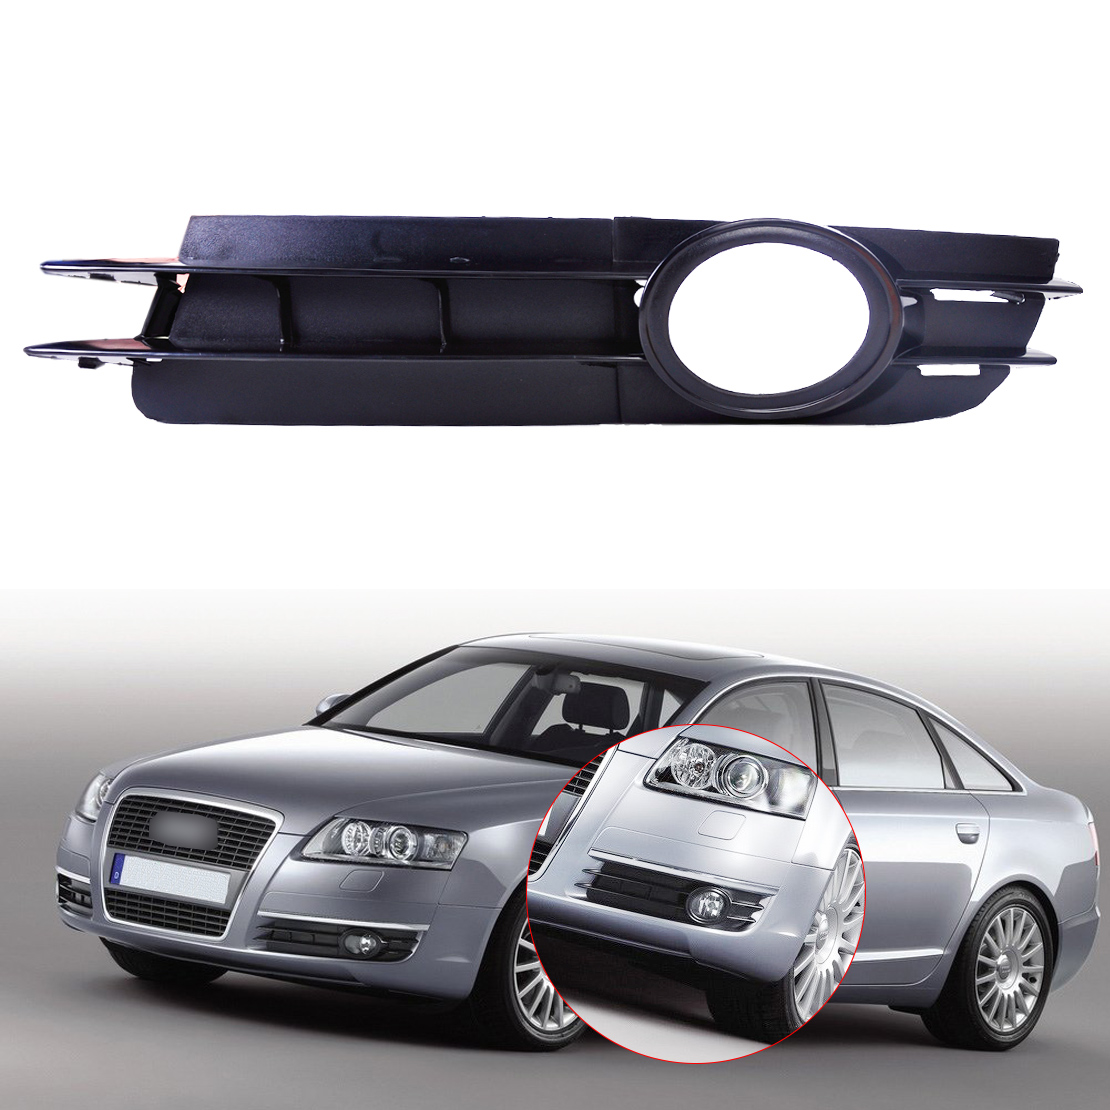 hight resolution of details about 4f080768a bumper fog light lamp grill grille front left for 05 08 audi a6 c6